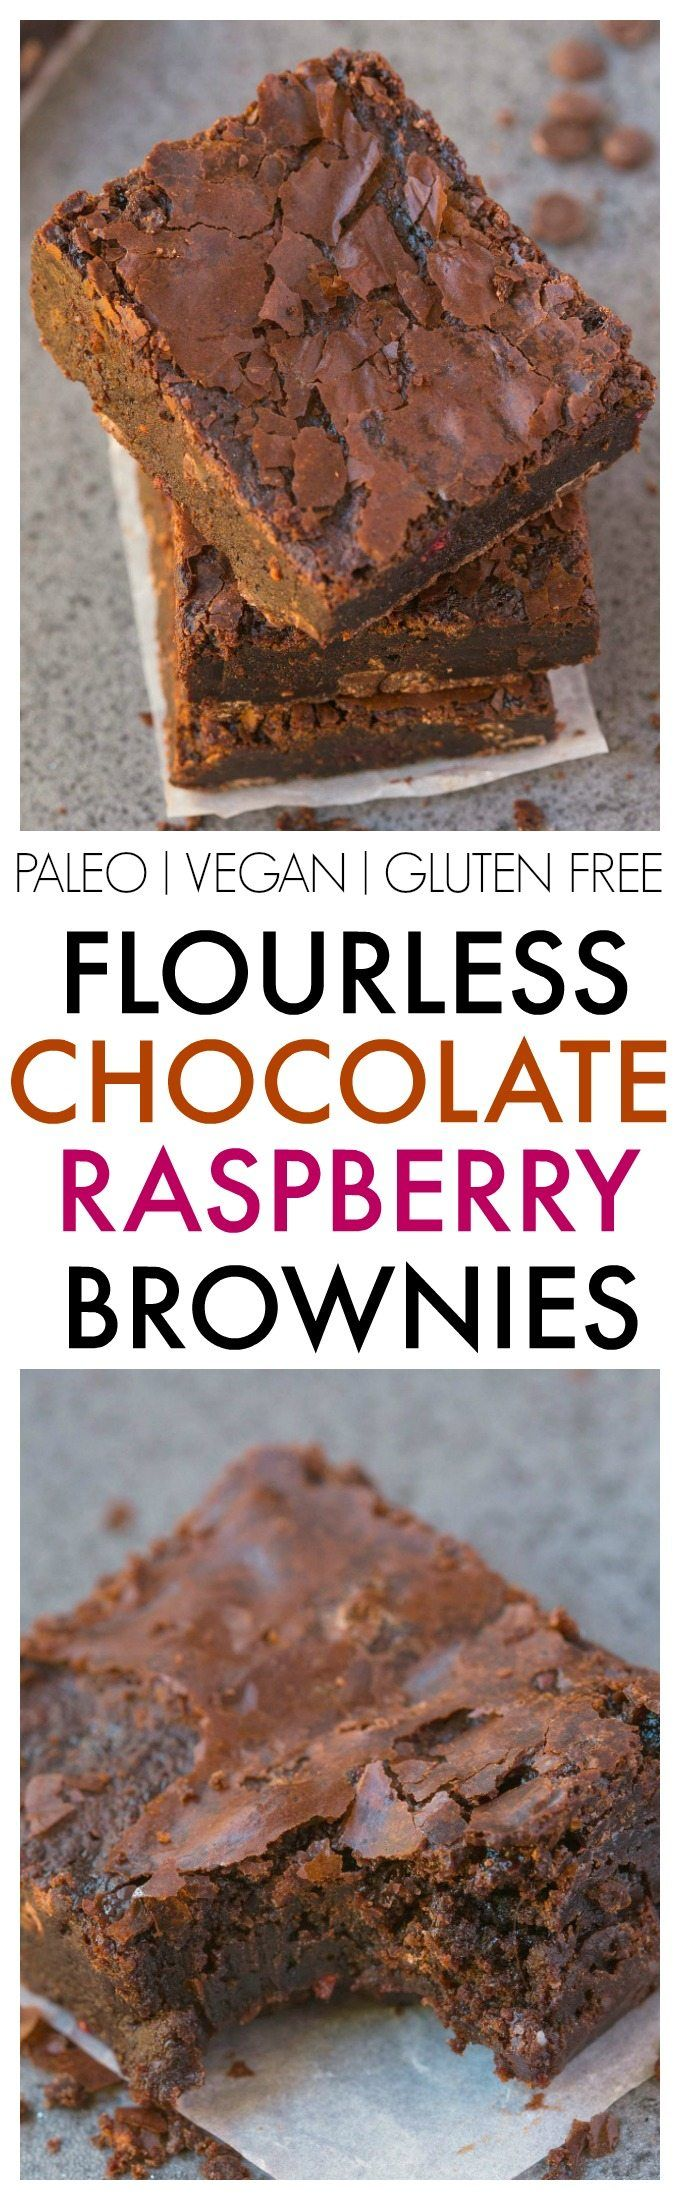 Healthier Flourless Chocolate Raspberry Brownies made with NO flour and NO…